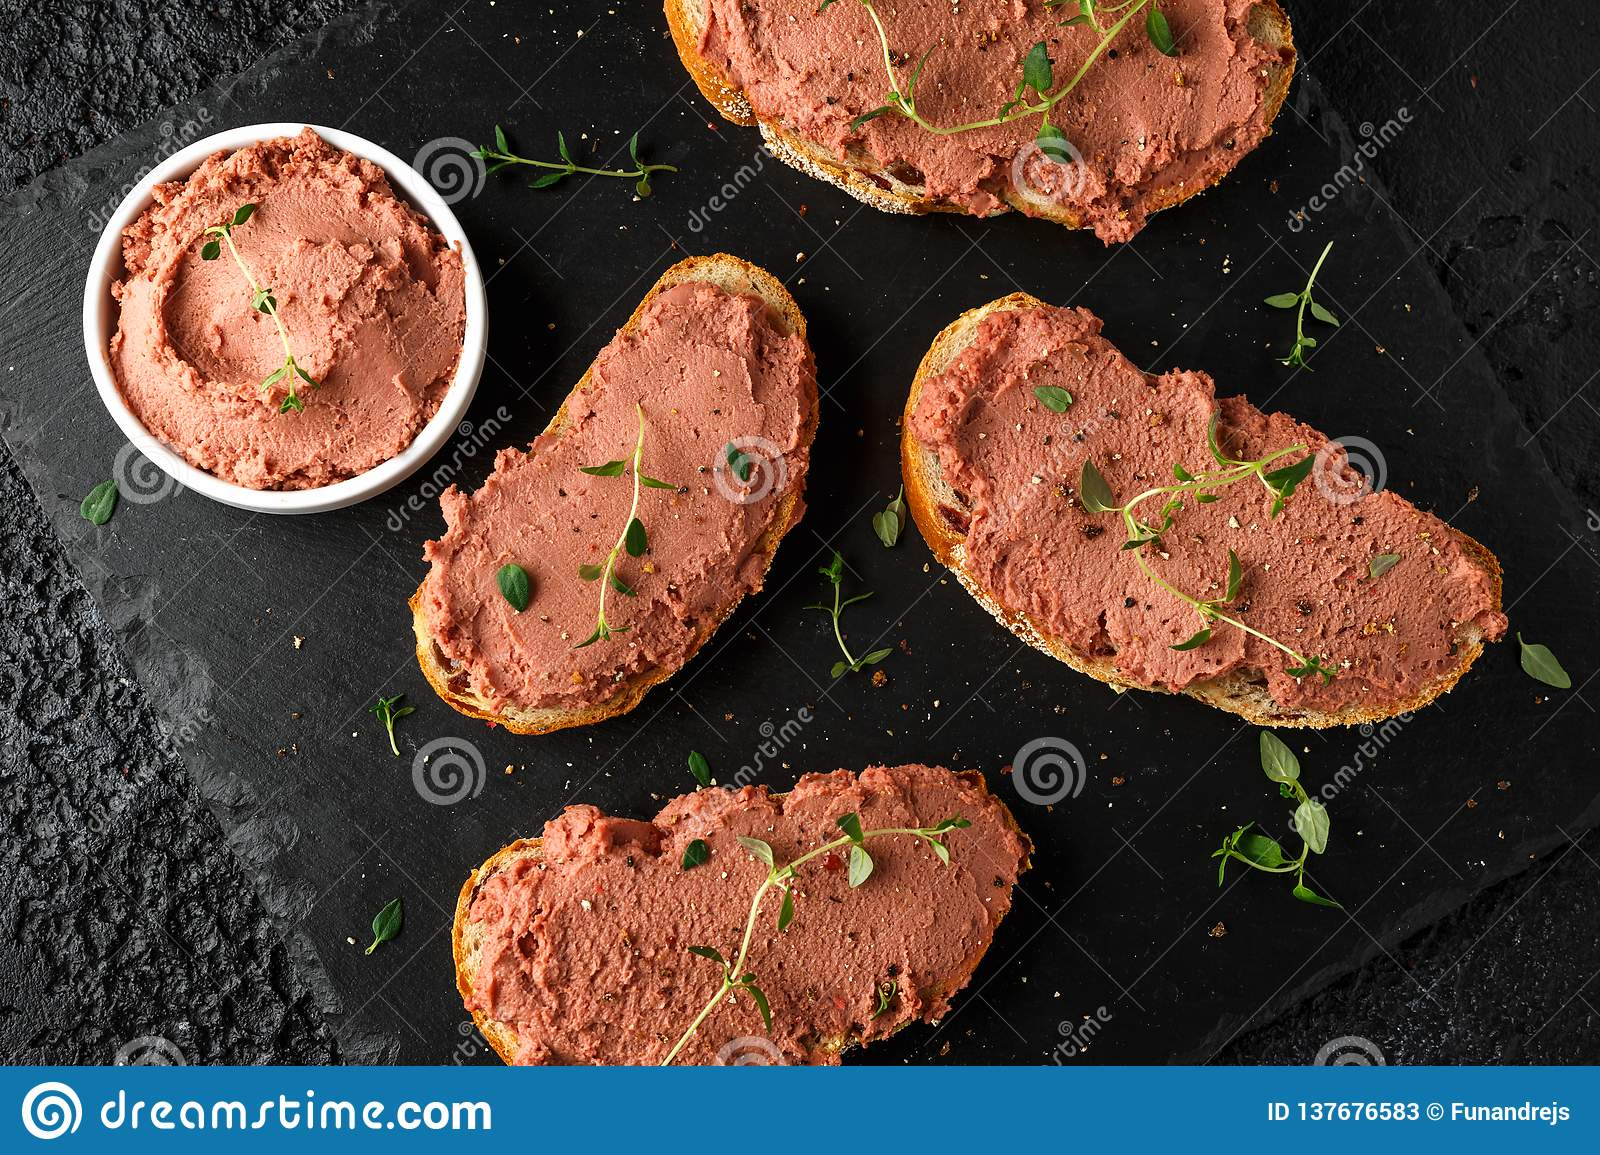 Fresh homemade chicken liver pate on bread